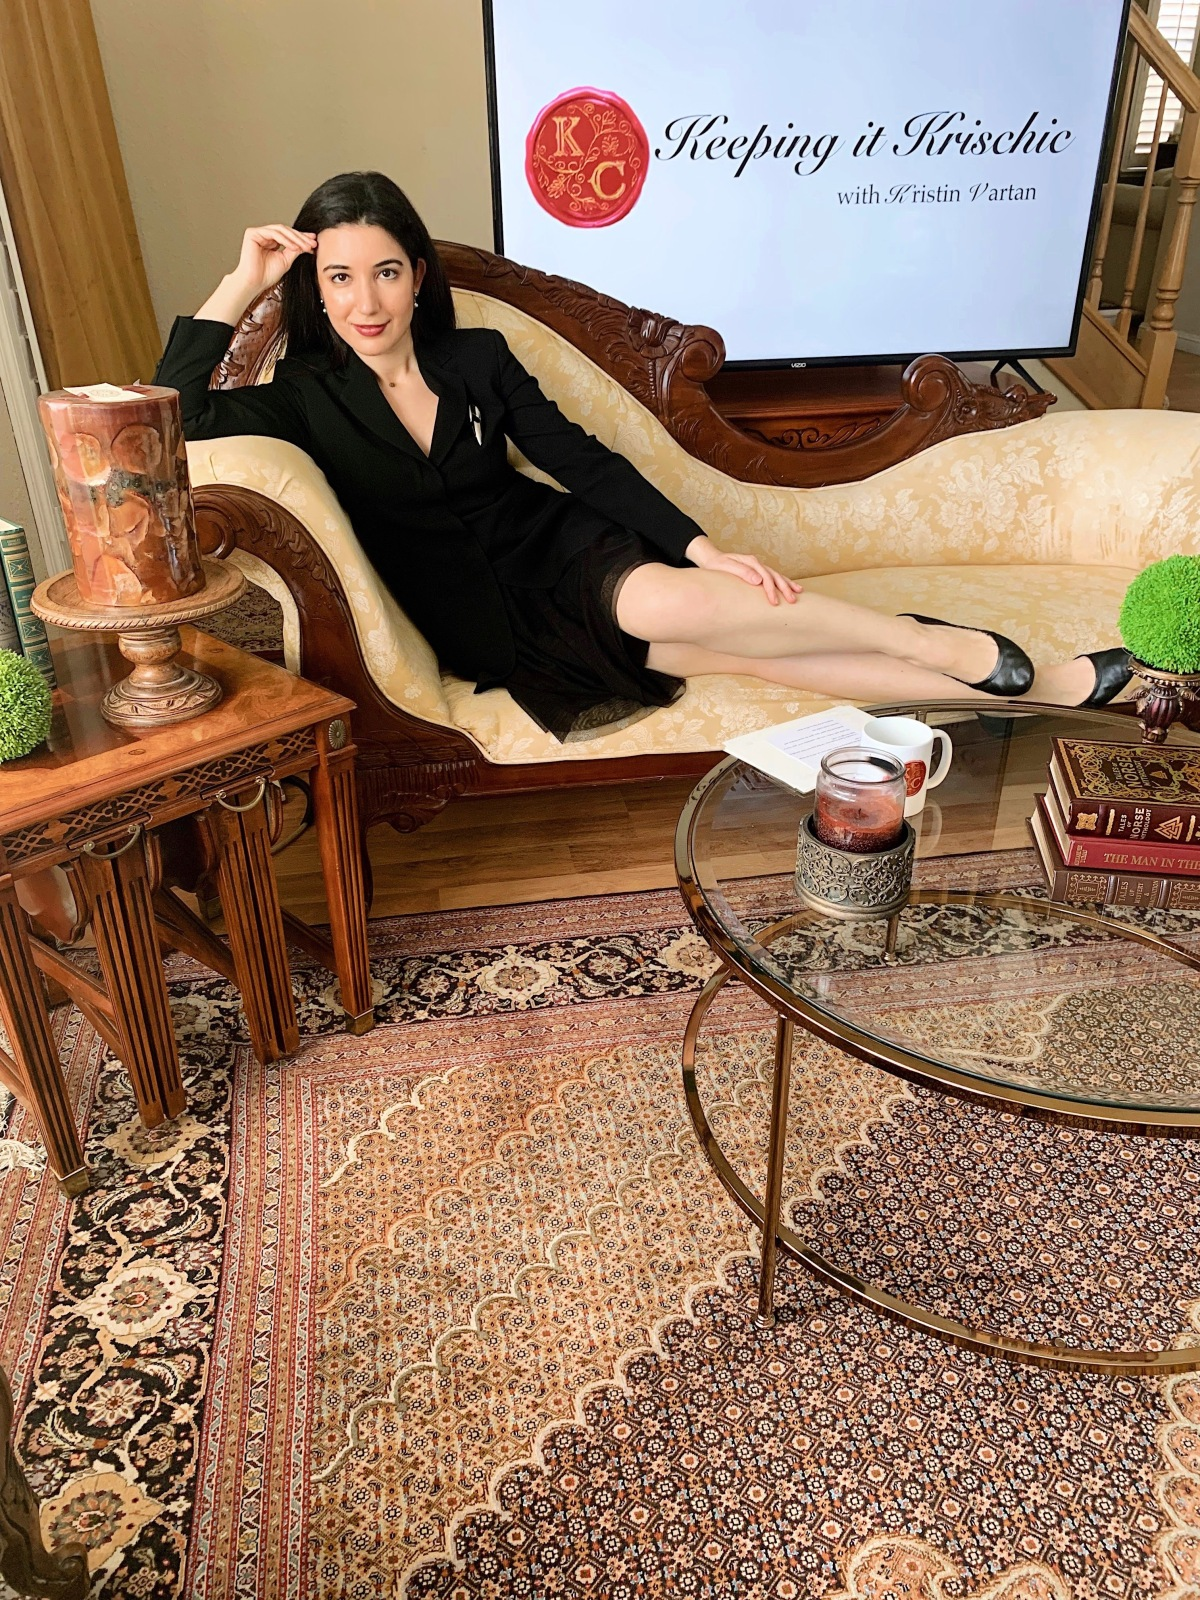 Kristin Vartan, Keeping it Krischic, essential workers, Coronavirus, COVID-19 pandemic, Cares Act, small businesses, Ruben Rojas, Live Through Love, Beautify Earth, United Way, talk show, talk show host, TV host, journalist, MMJ, home studio, work from home, fashion news, Coronavirus news, female journalist, LA Art, wall mural, LA artist, LA mural, You Can't Qurantine Love, Social Distancing, sheltering in place, stay home